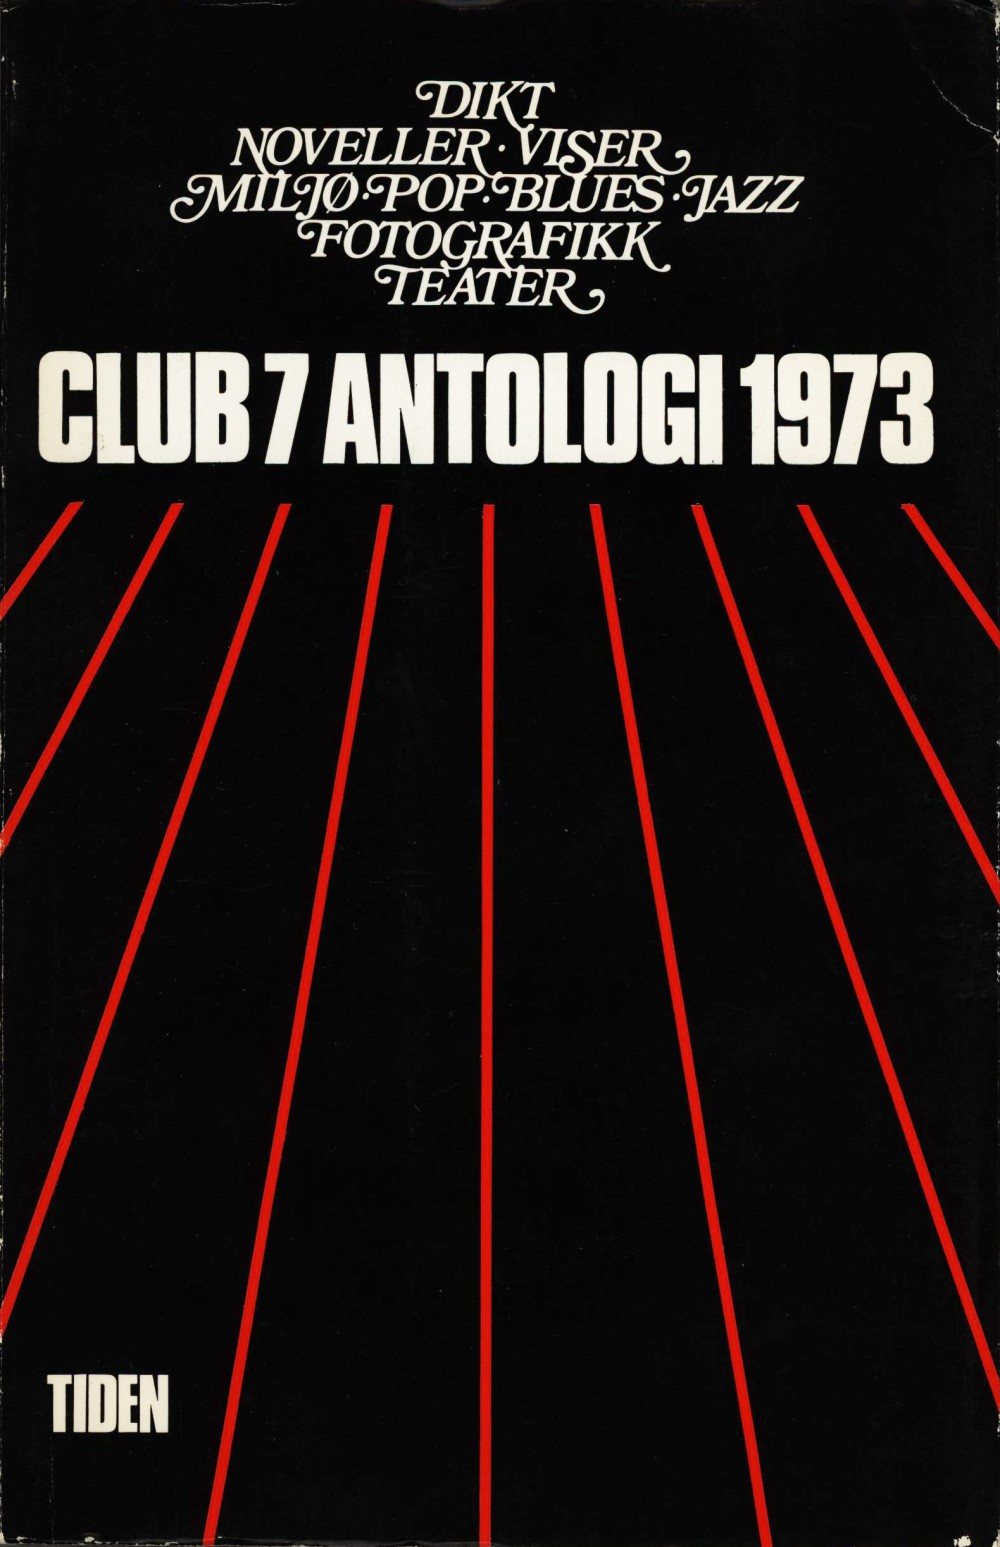 Oddmund Berg (red): Club 7 antologi 1973